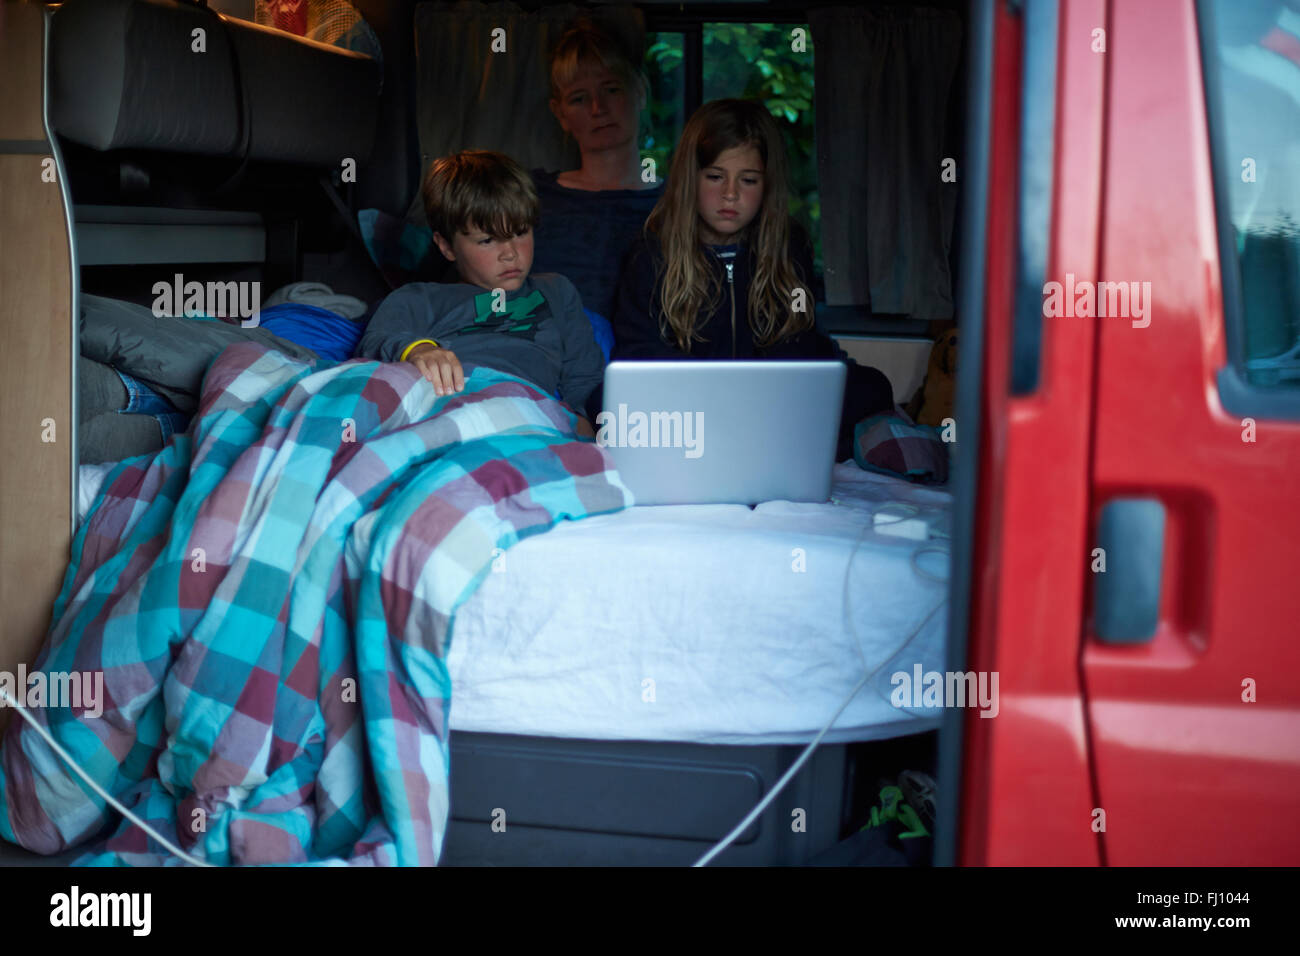 Mother and two children sitting on bed in a camper watching a movie with laptop - Stock Image